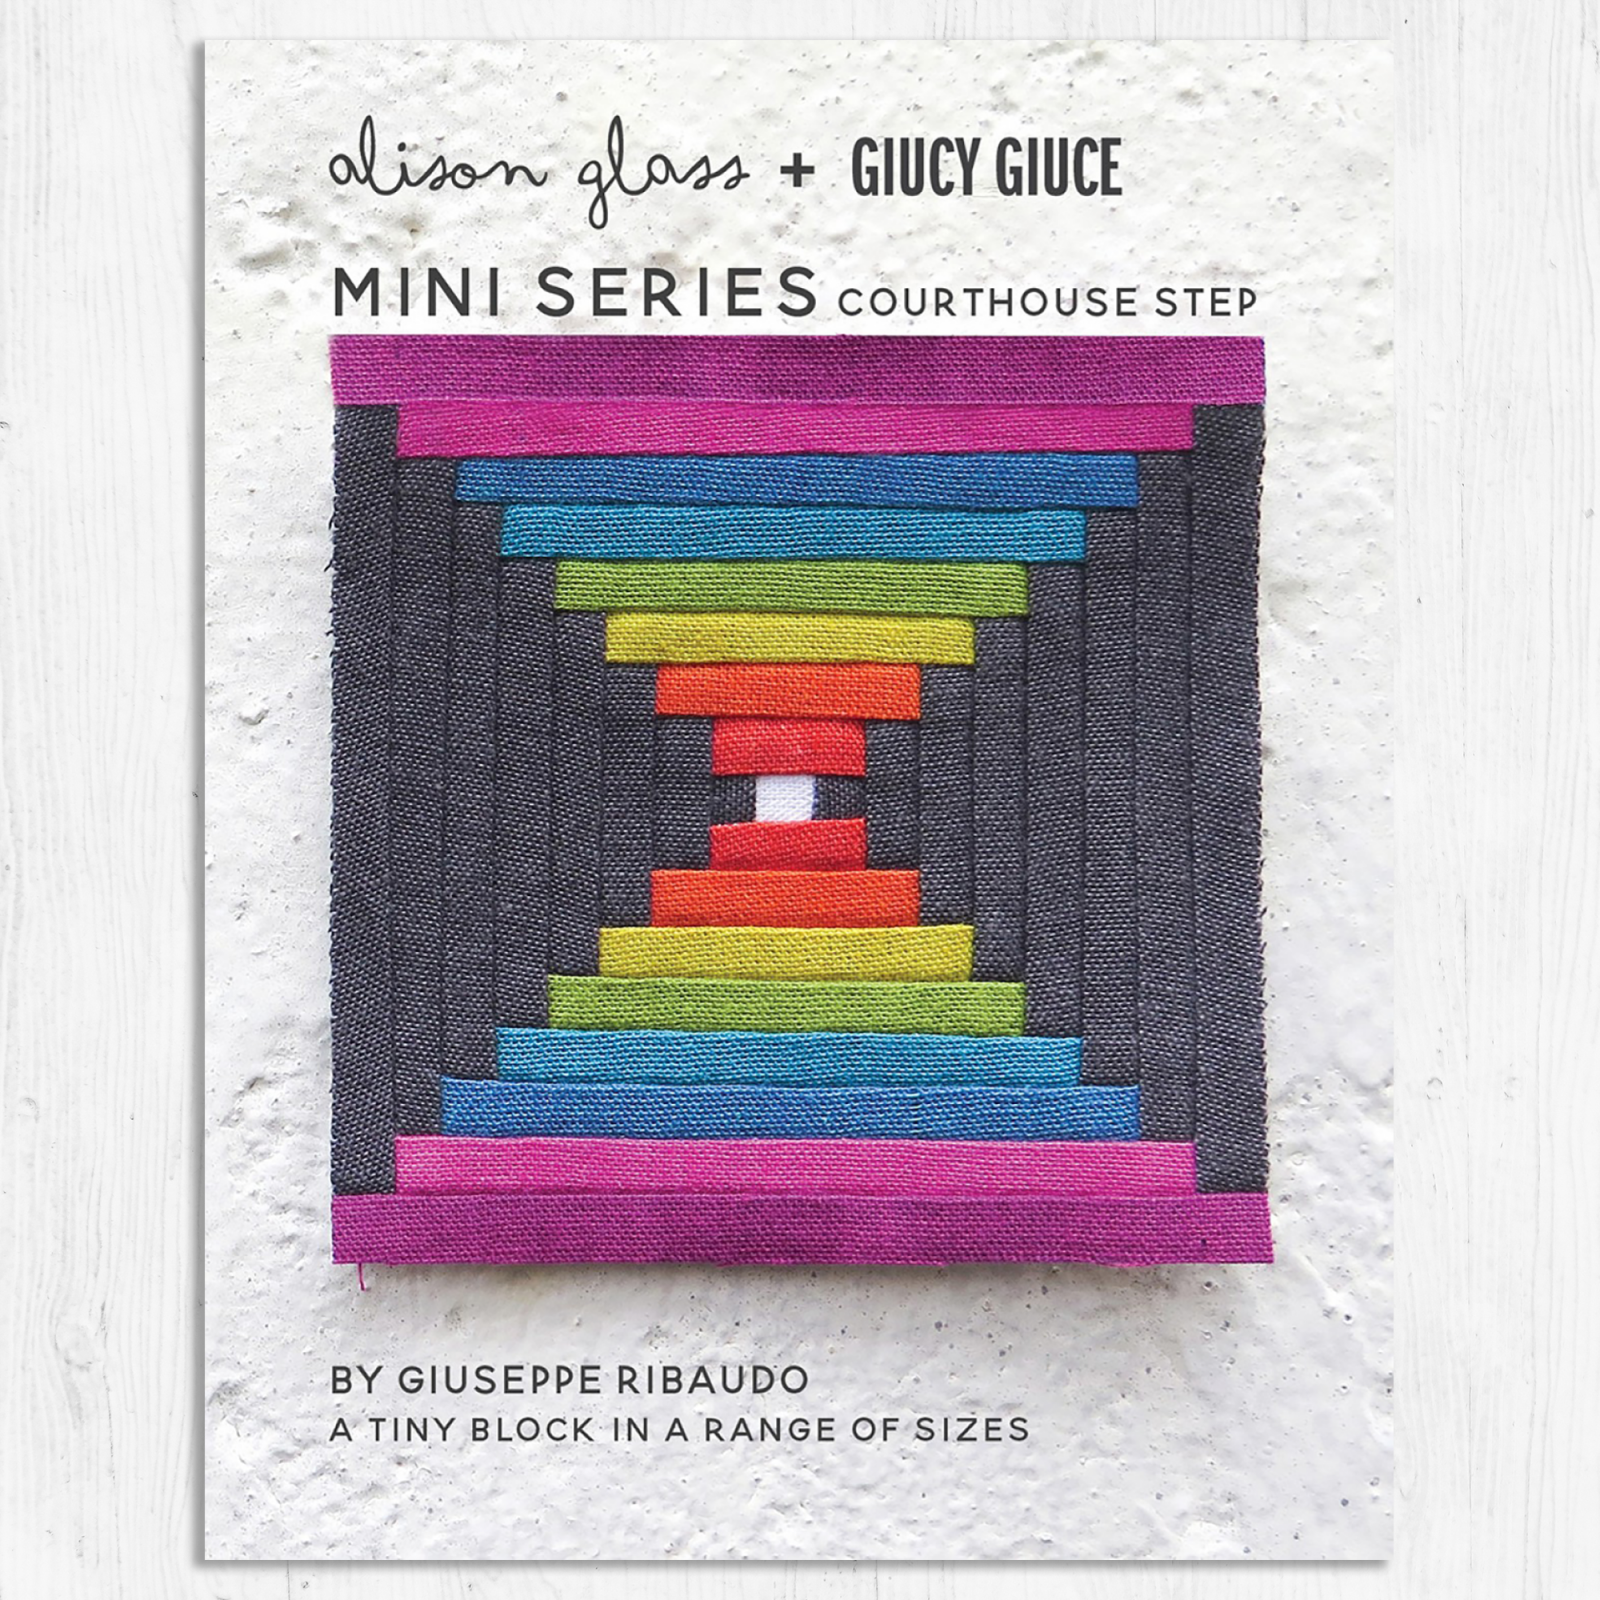 Alison Glass + Giucy Giuce - Mini Series - Courthouse Steps